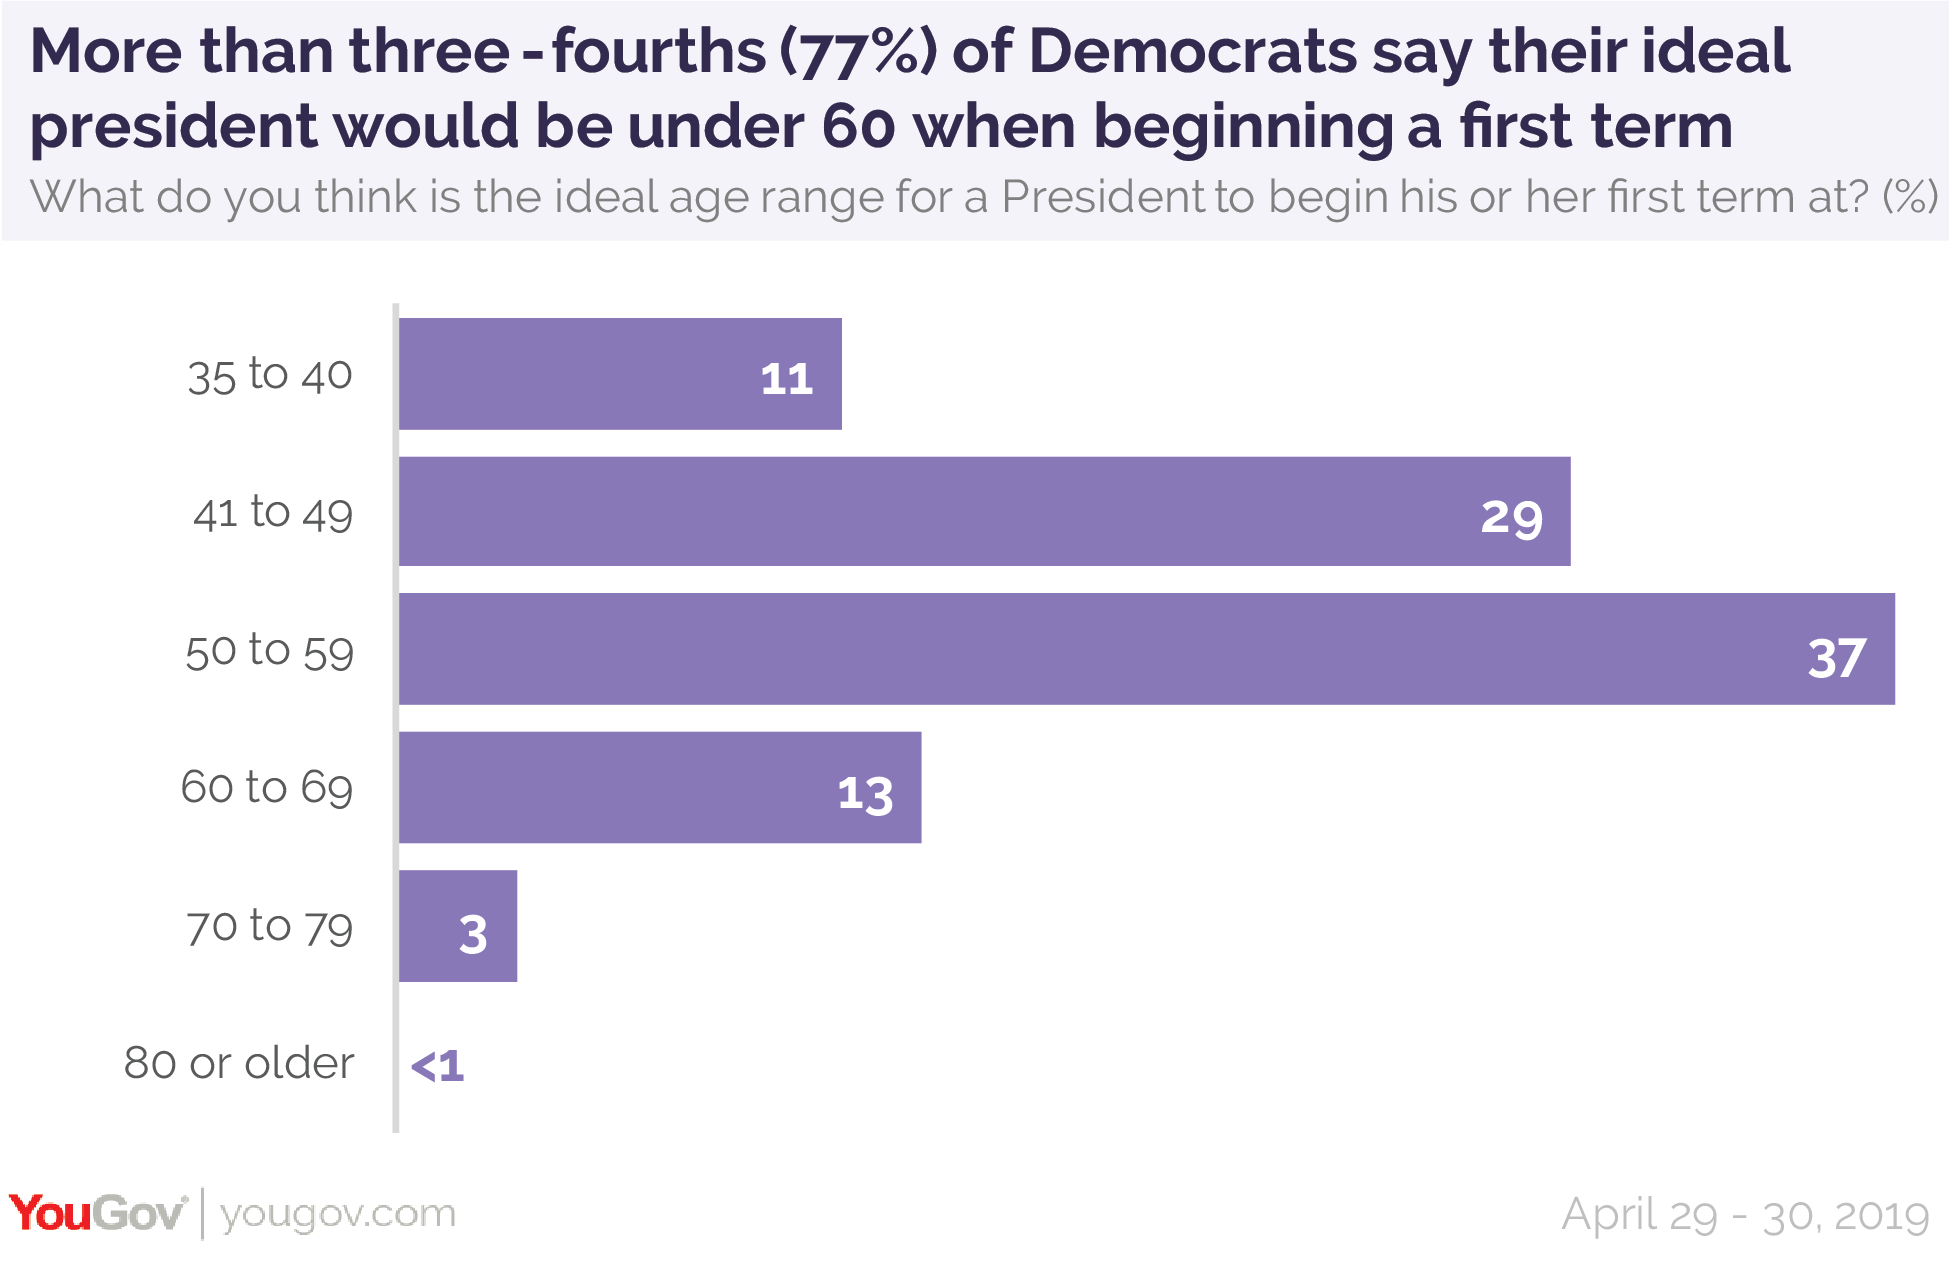 More than three-fourths (77%) of Democrats say their ideal president would be under 60 when beginning a first presidential term